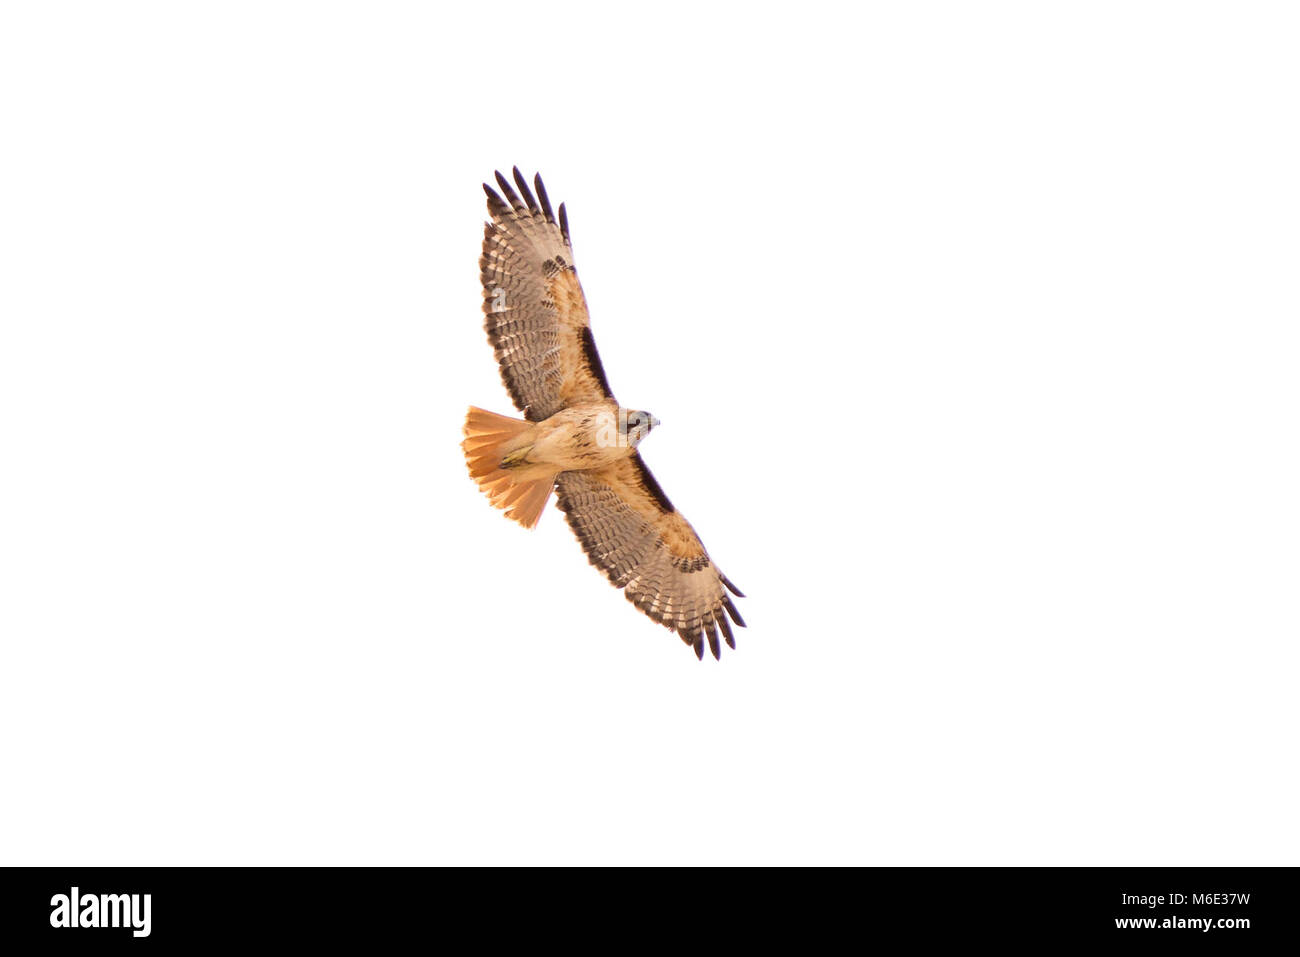 Red-tailed hawk (Buteo jamaicensis). - Stock Image